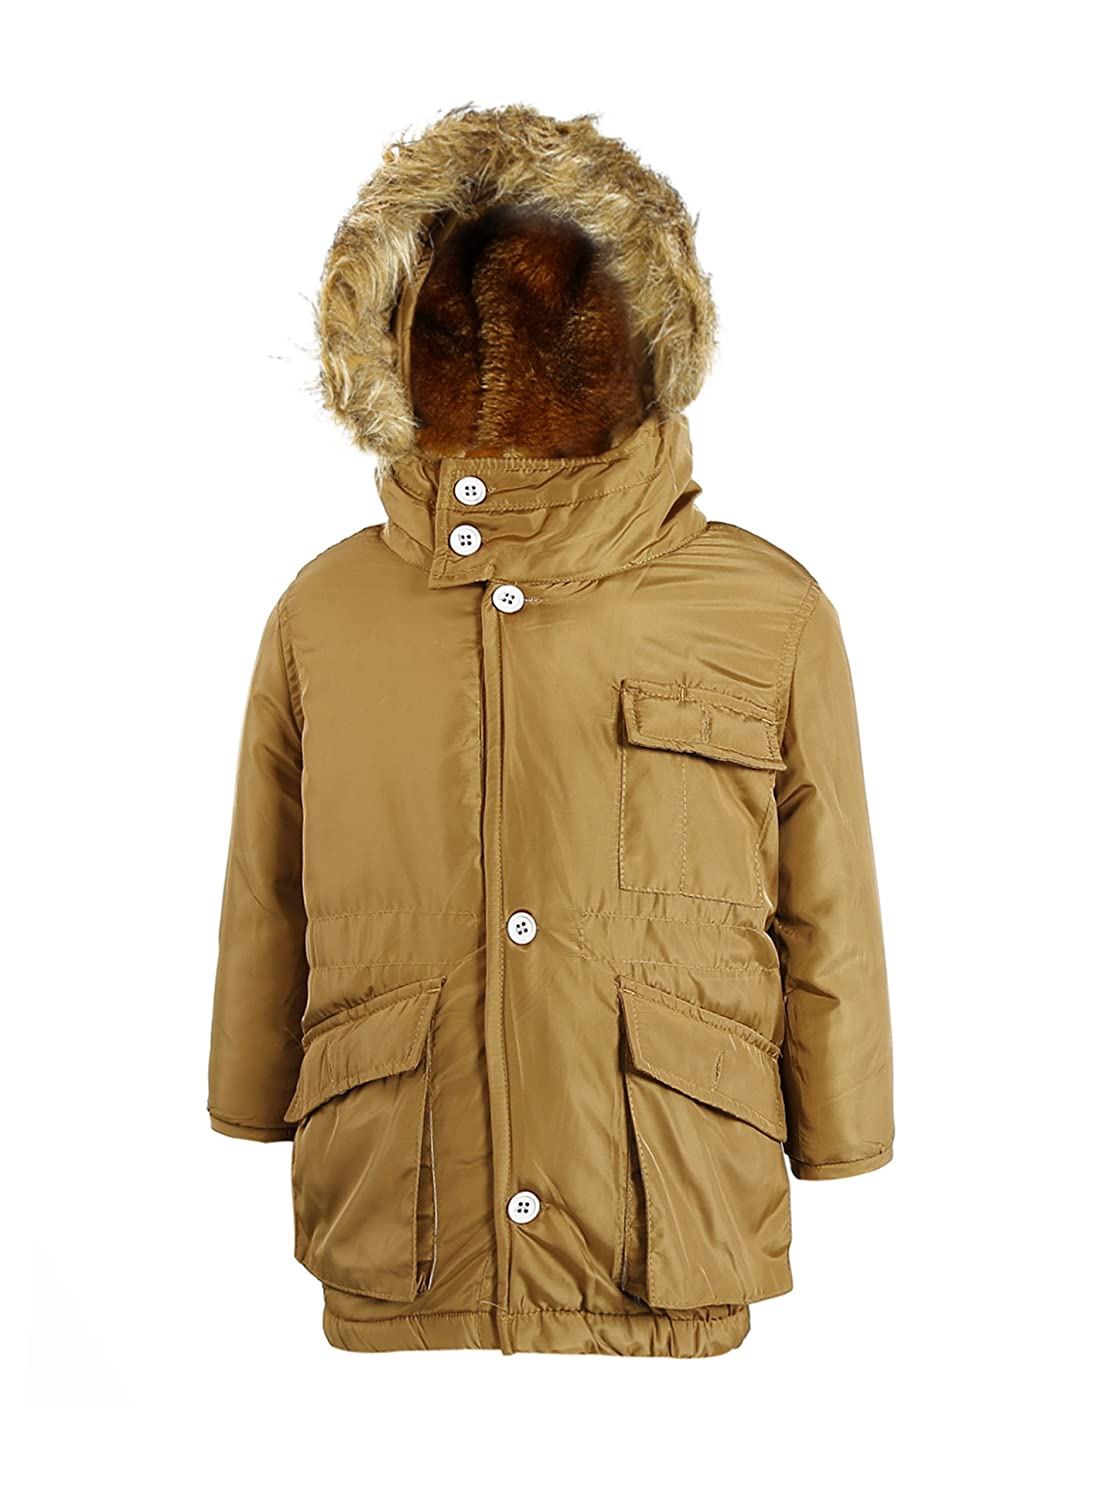 Zity Boys winter Padded Jacket with Pockets Belt and Fur Hooded ZITY-CA-20161019001